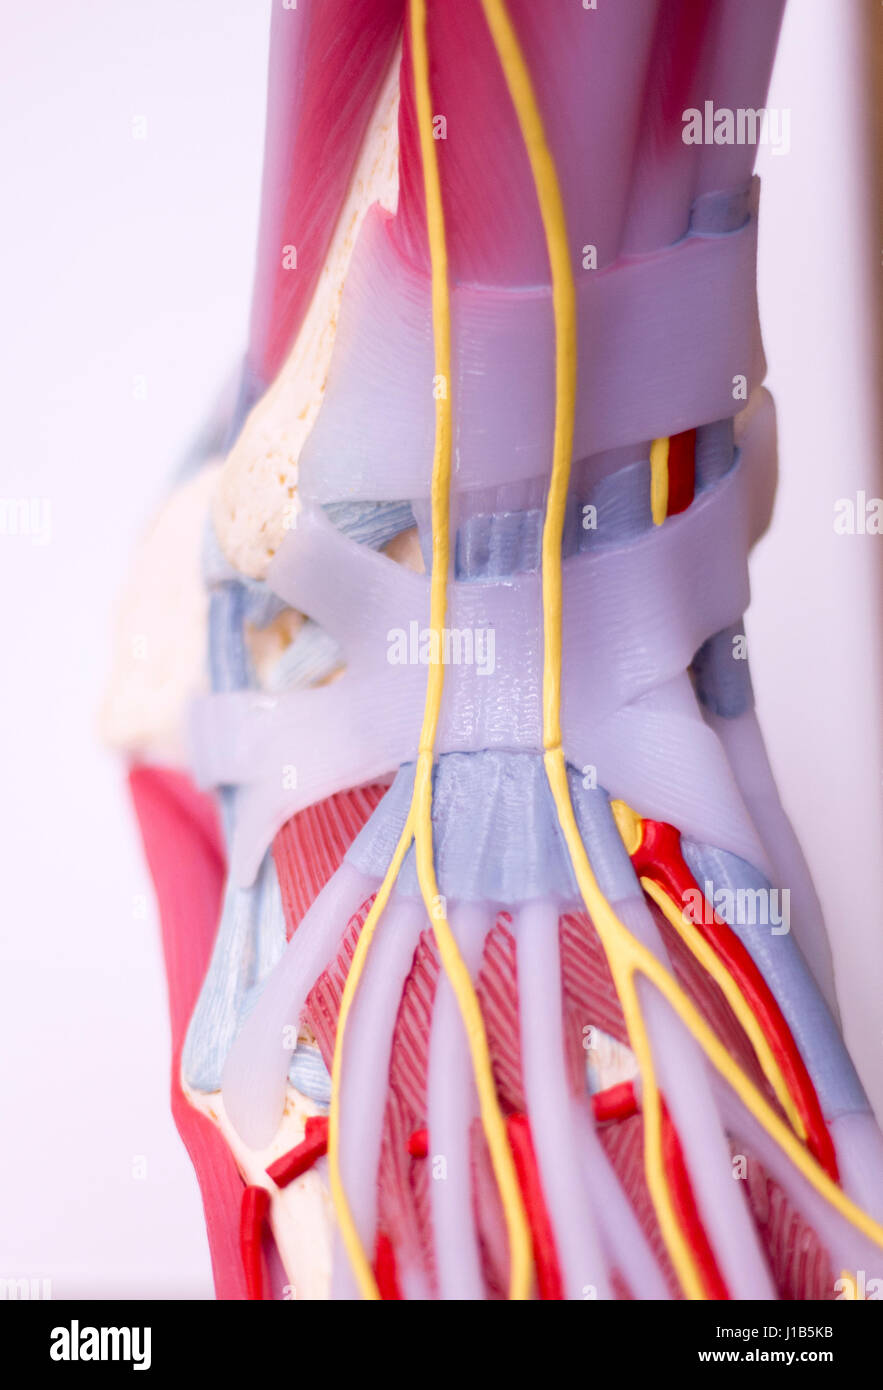 Foot Medical Study Student Anatomy Model Showing Bones Toes Stock